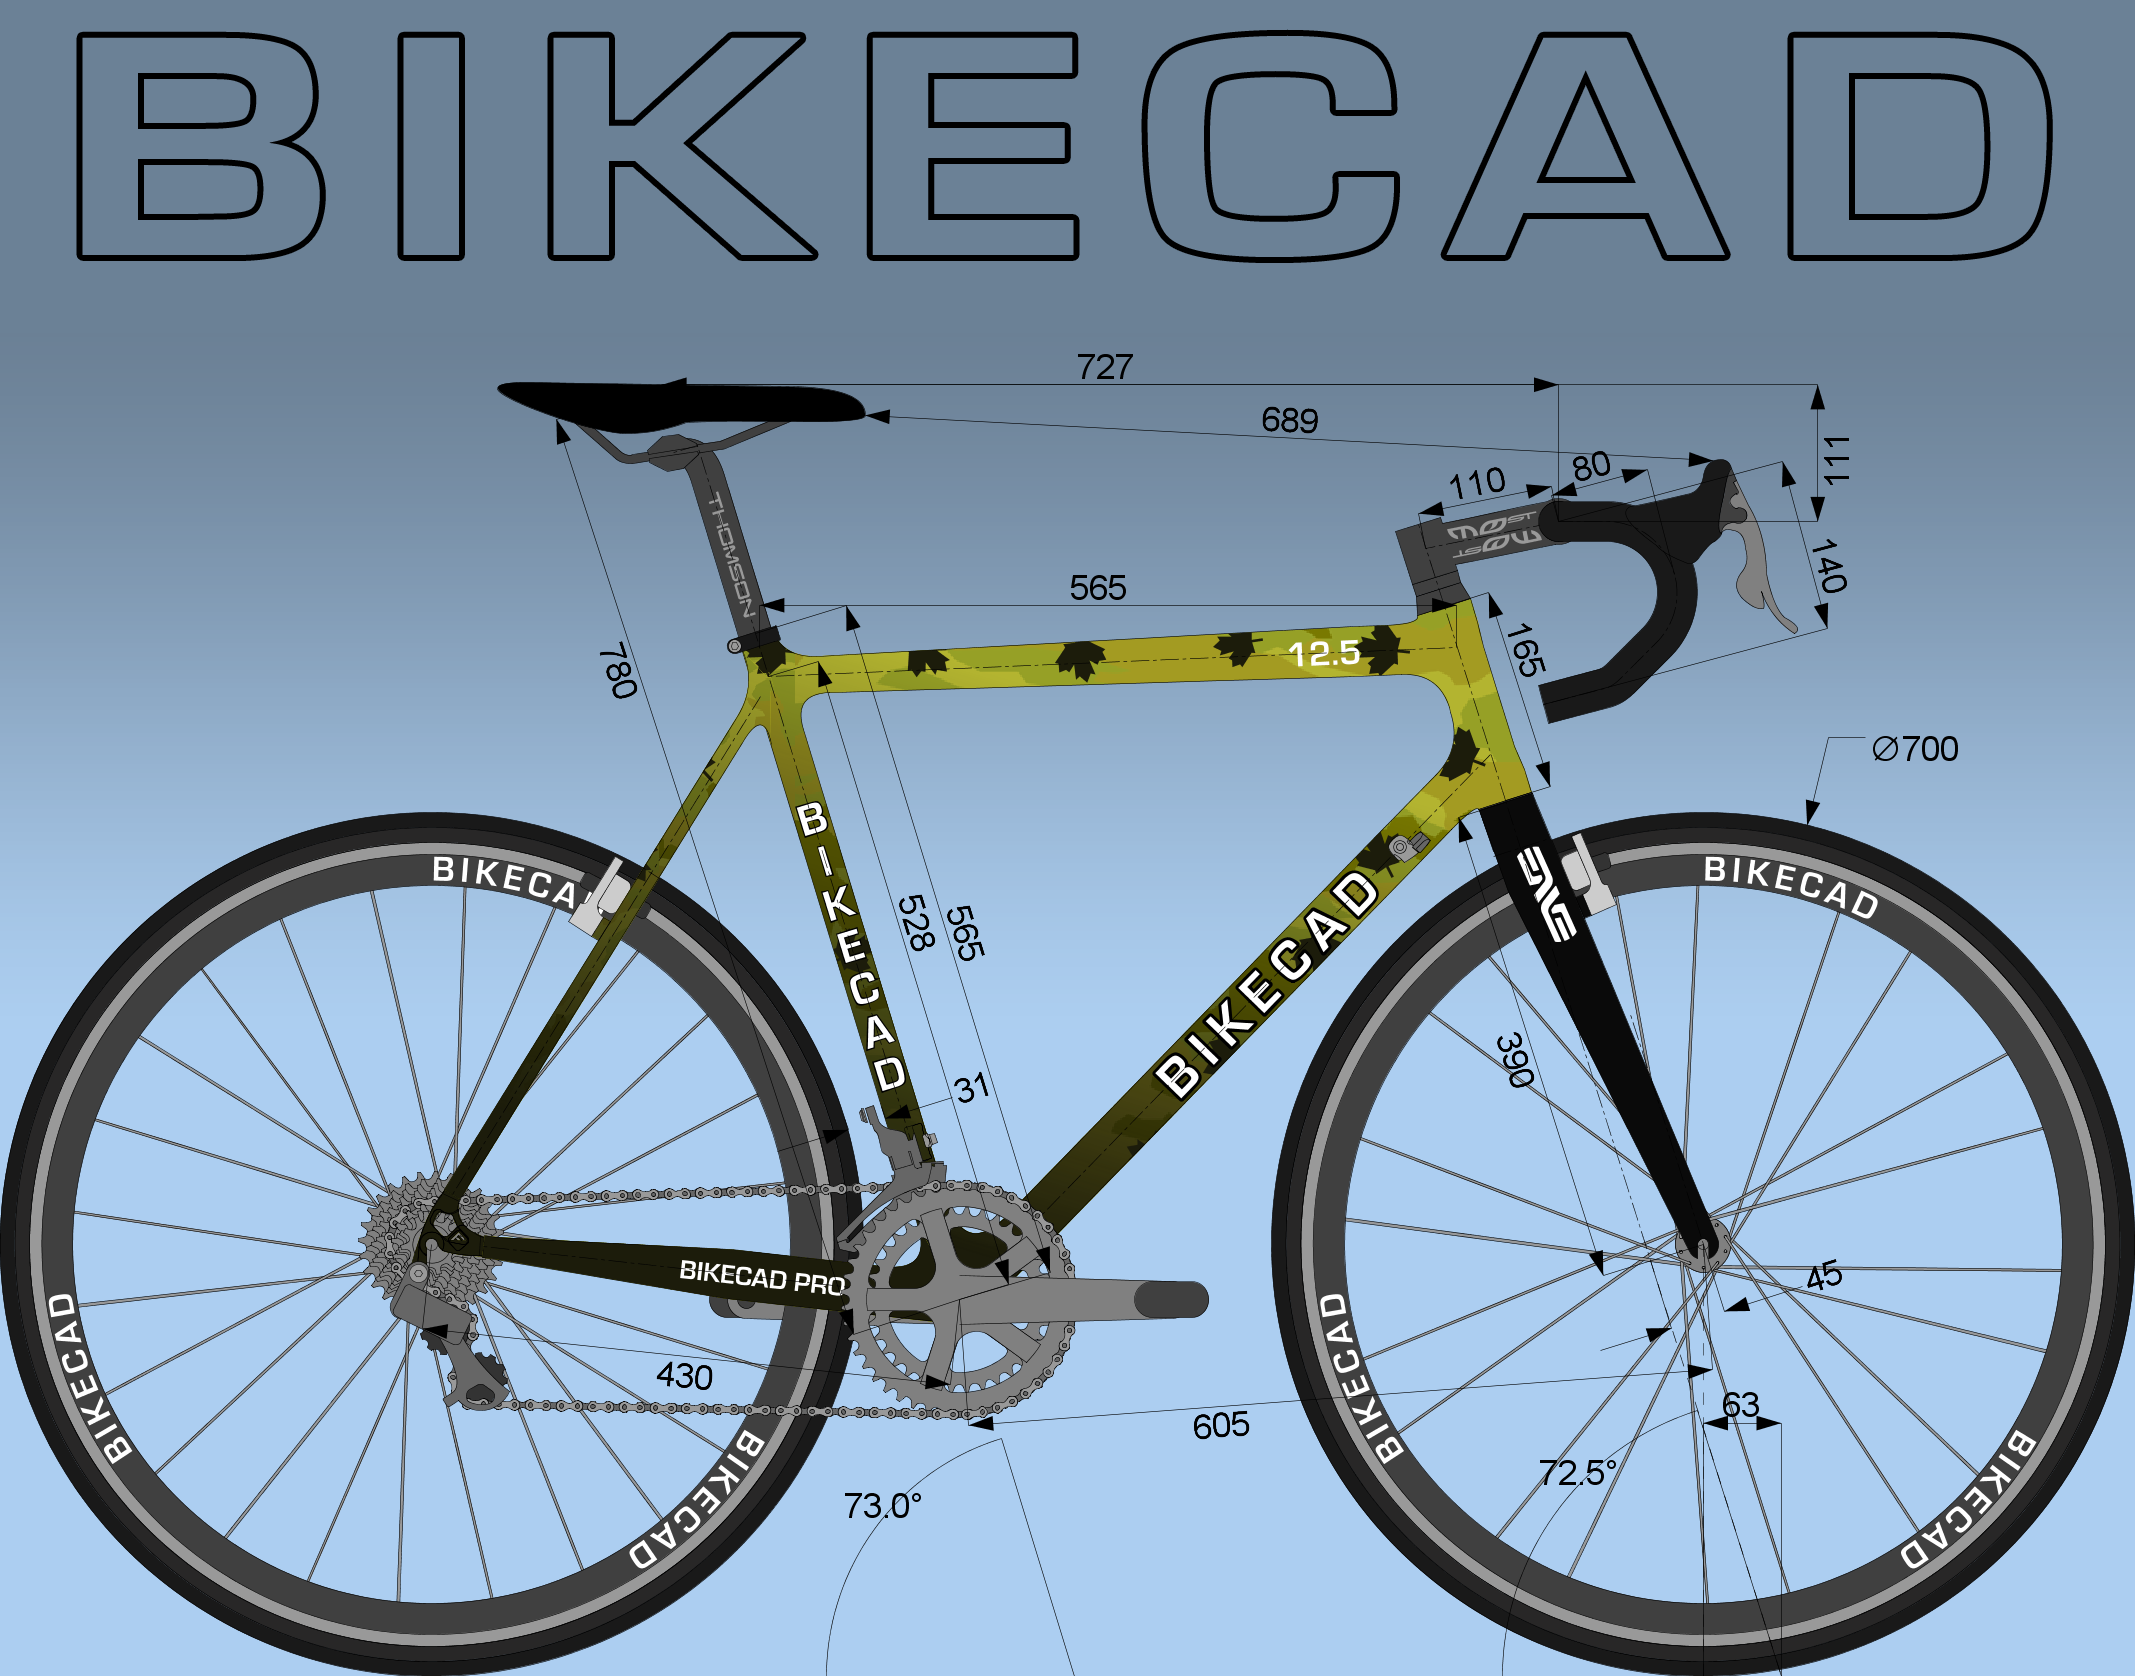 Drawing Software Www Bikecad Ca Bicycle Design Software